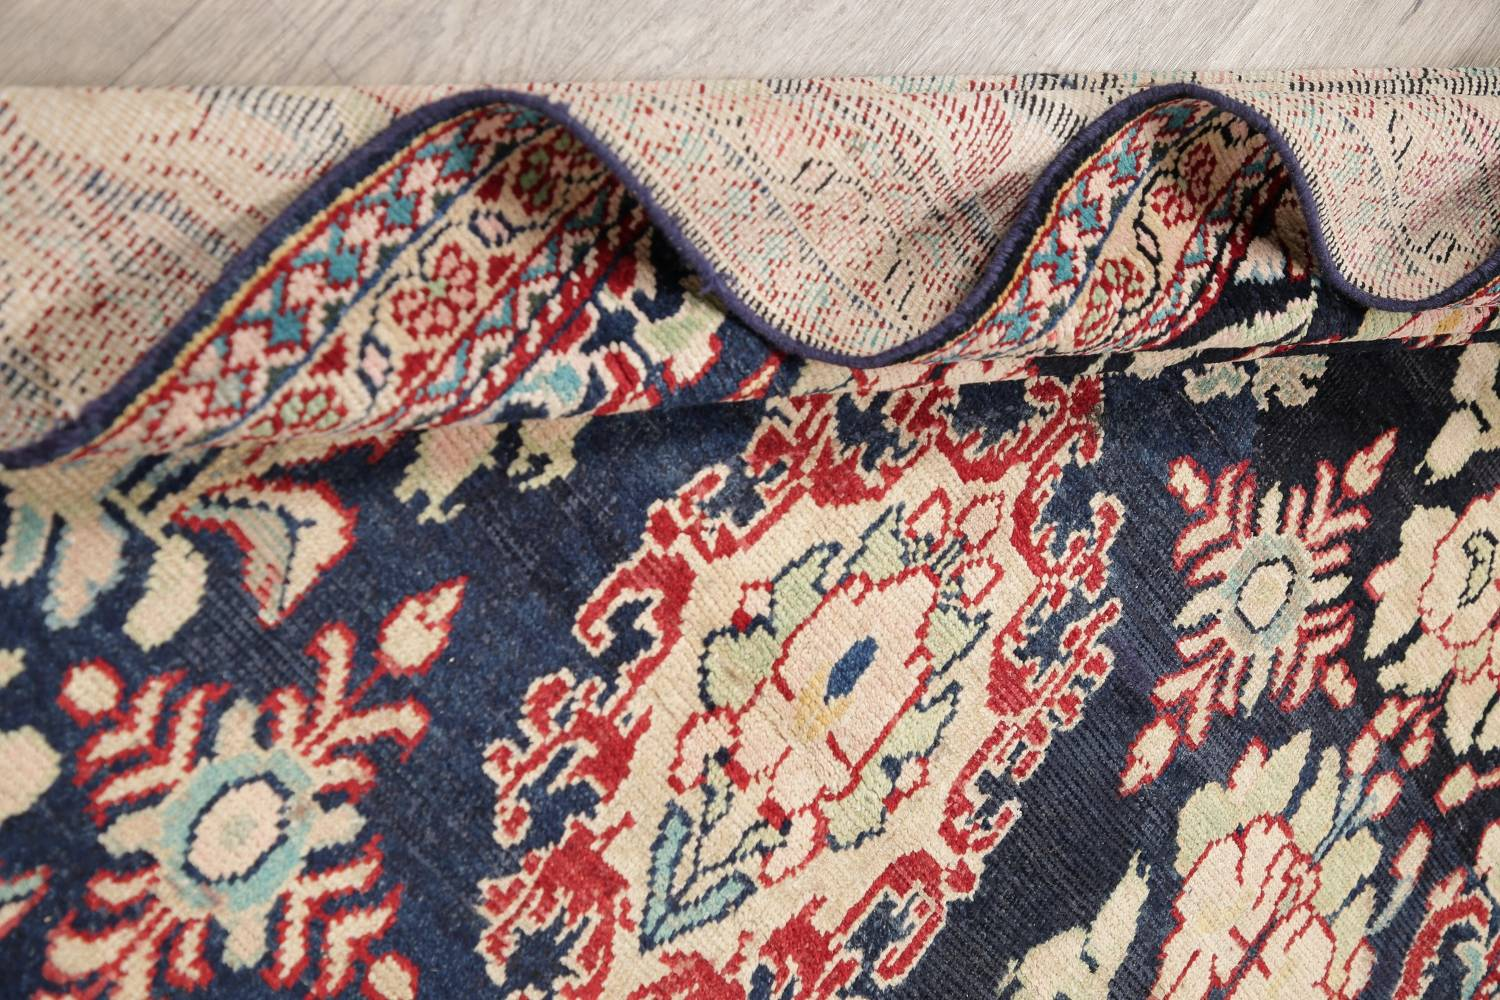 Antique Navy Blue Sultanabad Persian Runner Rug 5x9 image 18